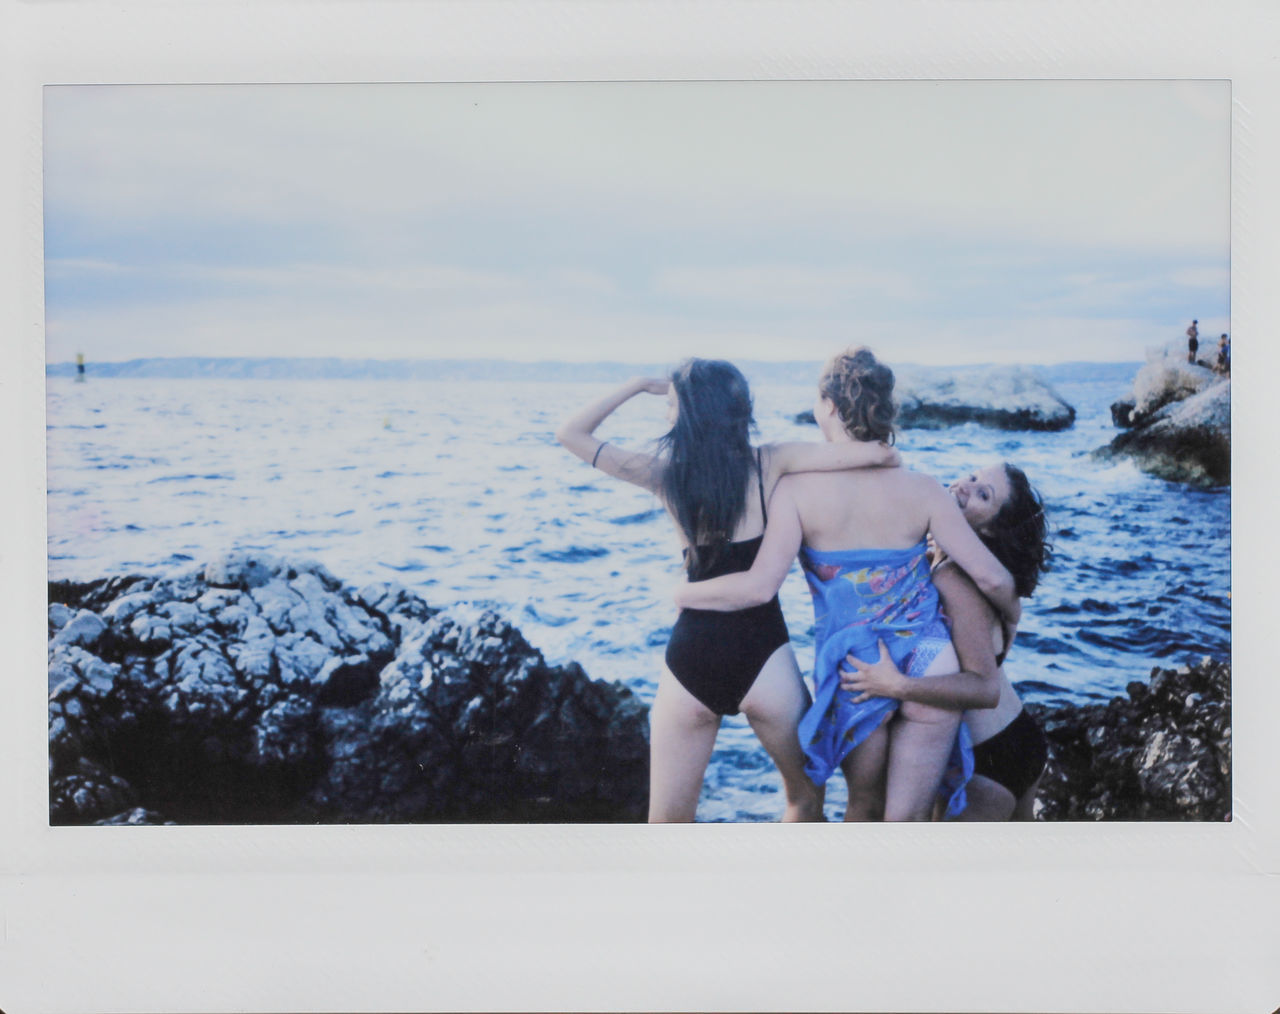 Girls Girls Girls. beauty beauty in Nature film photography filmisnotdead Girl Power girls Girlswithtattoos Instax lifeisbeautiful Lifestyle lifestyle photography lifestyles polaroid Polaroid Camera sea sea view seascape summer summer vibes Summertime Vacations water women young adult young women